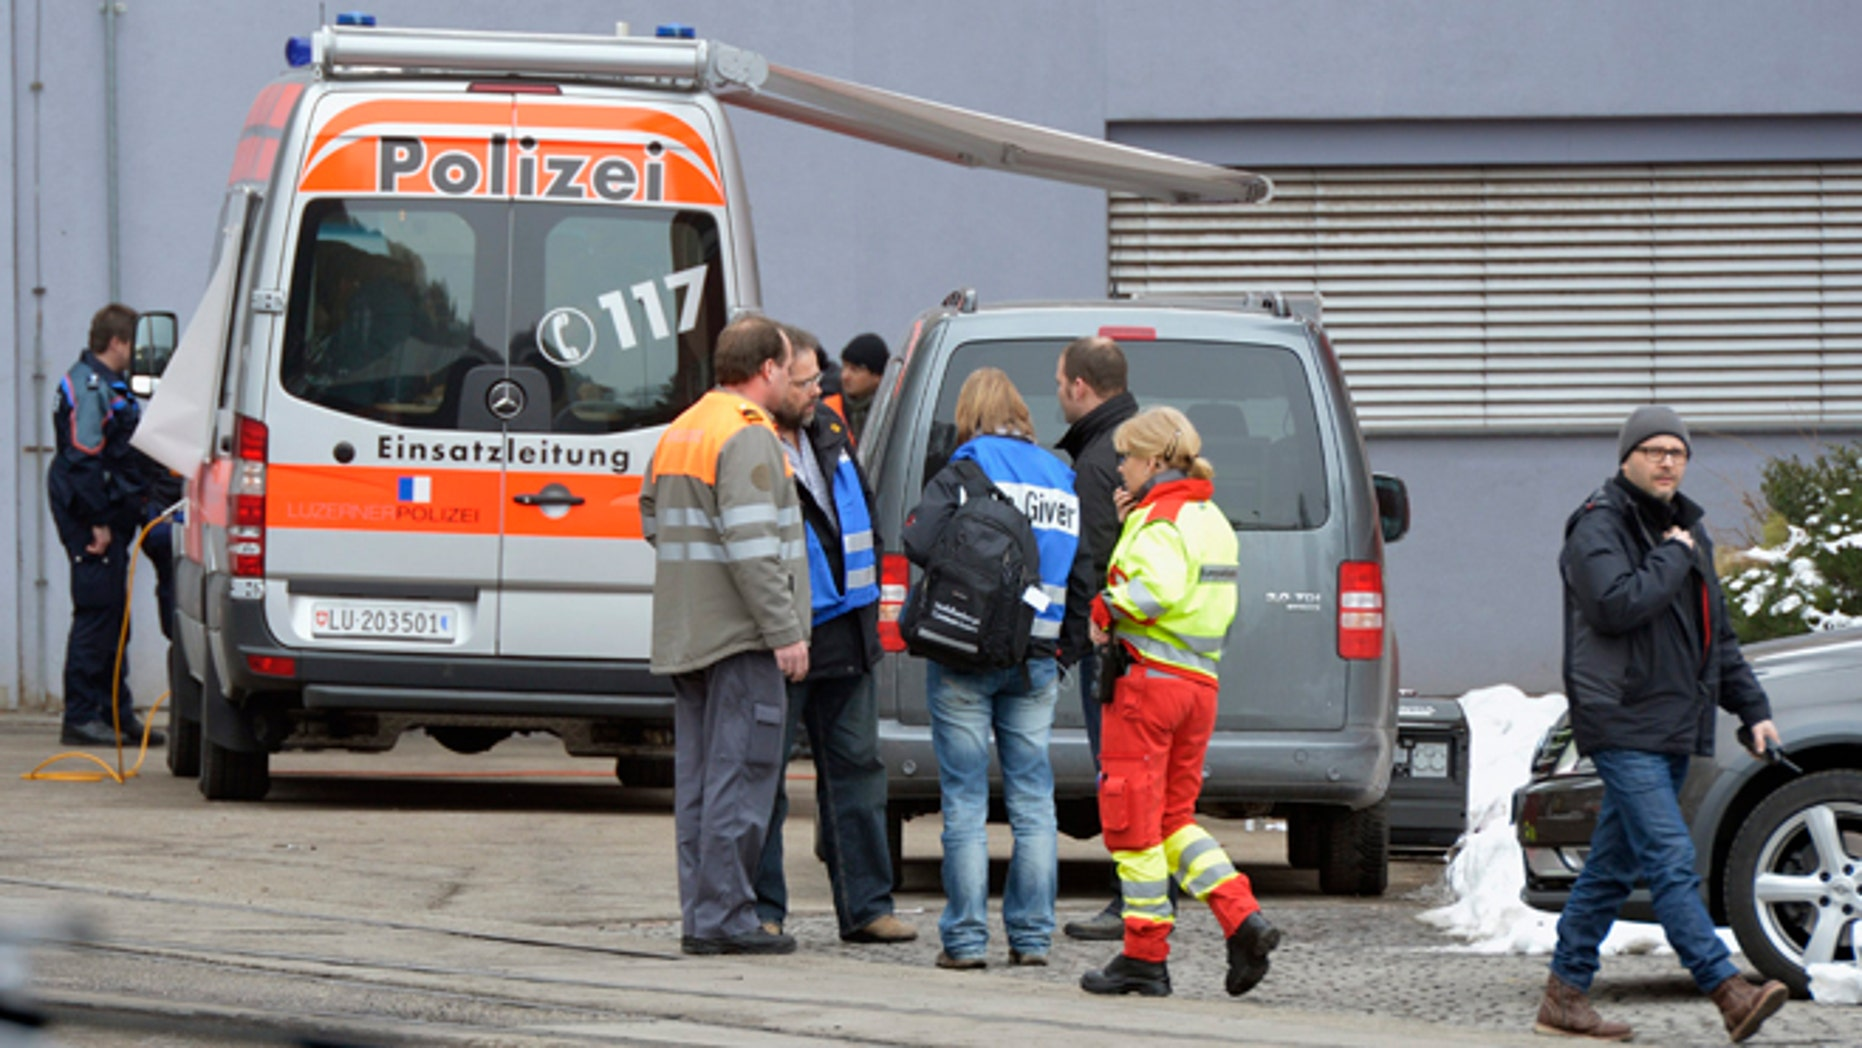 Feb. 27, 2013: Police stand in front of a wood-processing company in Menznau, central Switzerland, where several people were killed in a shooting. Police in Lucerne canton (state) said in a statement that the shooting occurred shortly after 9 a.m. at the premises of Kronospan, a company in the small town west of Lucerne. They said there were several dead and several seriously injured people and that rescue services were deployed and the scene sealed off.